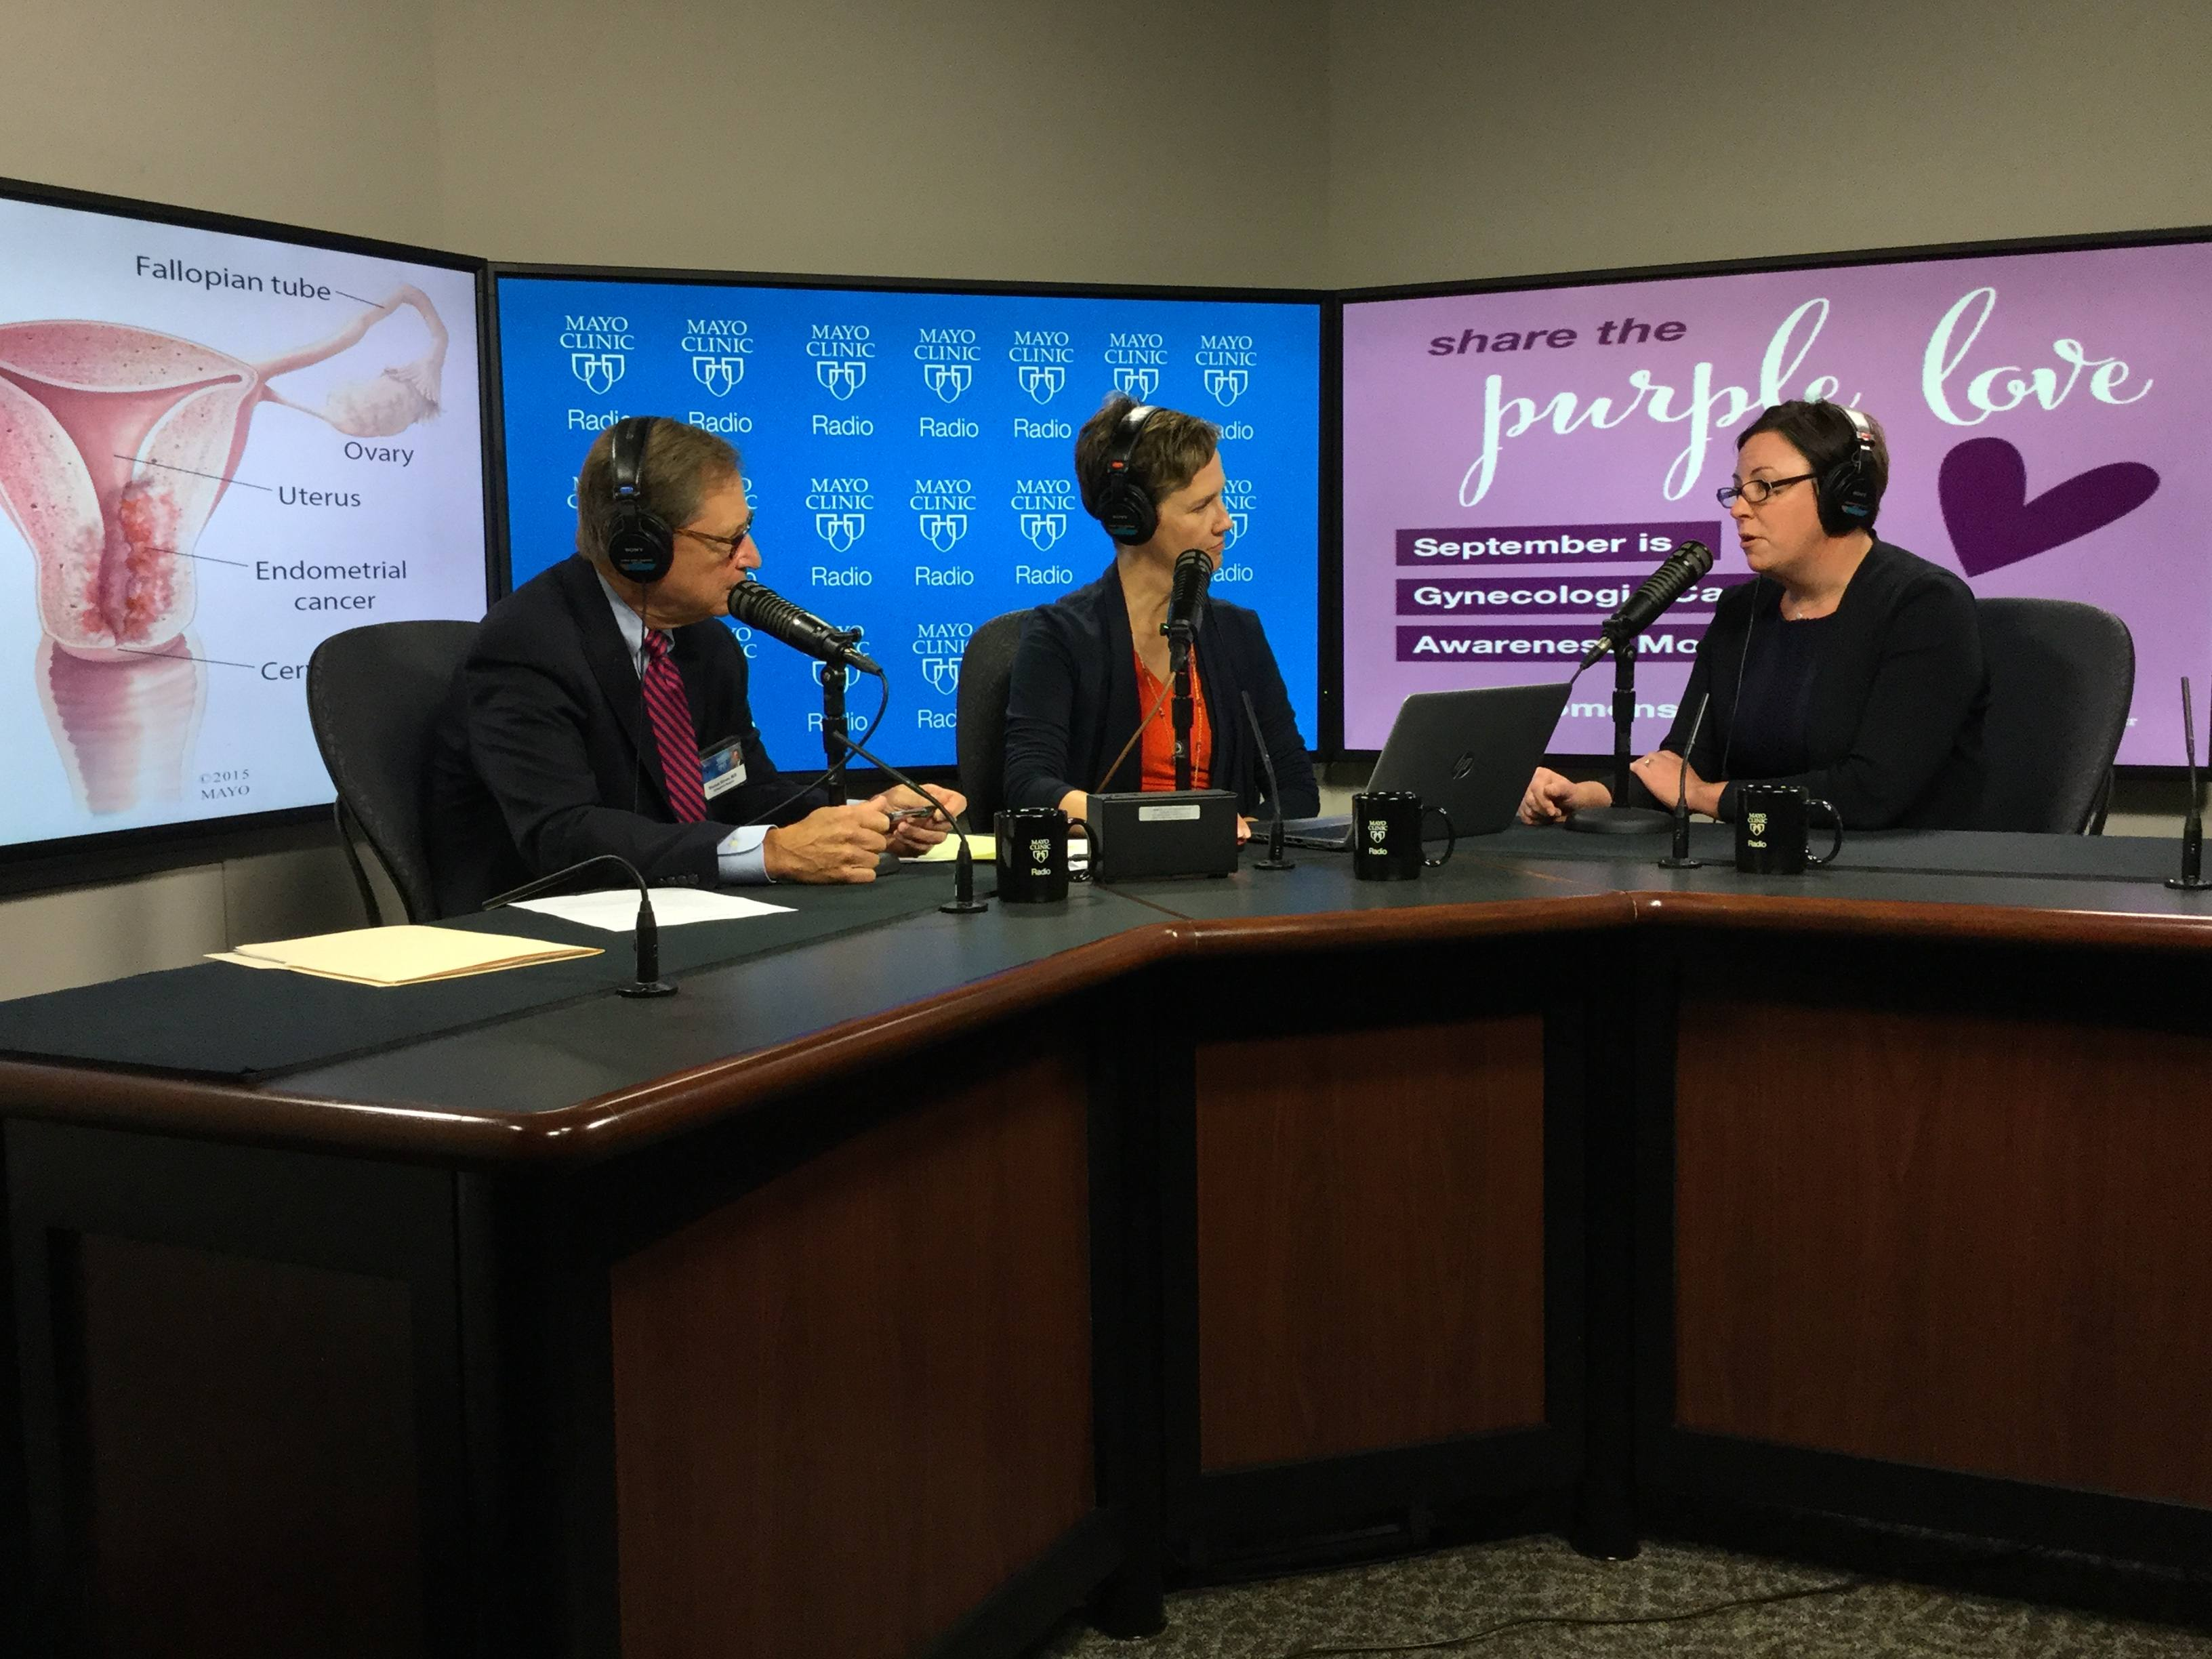 Dr. Jamie Bakkum-Gamez being interviewed on Mayo Clinic Radio